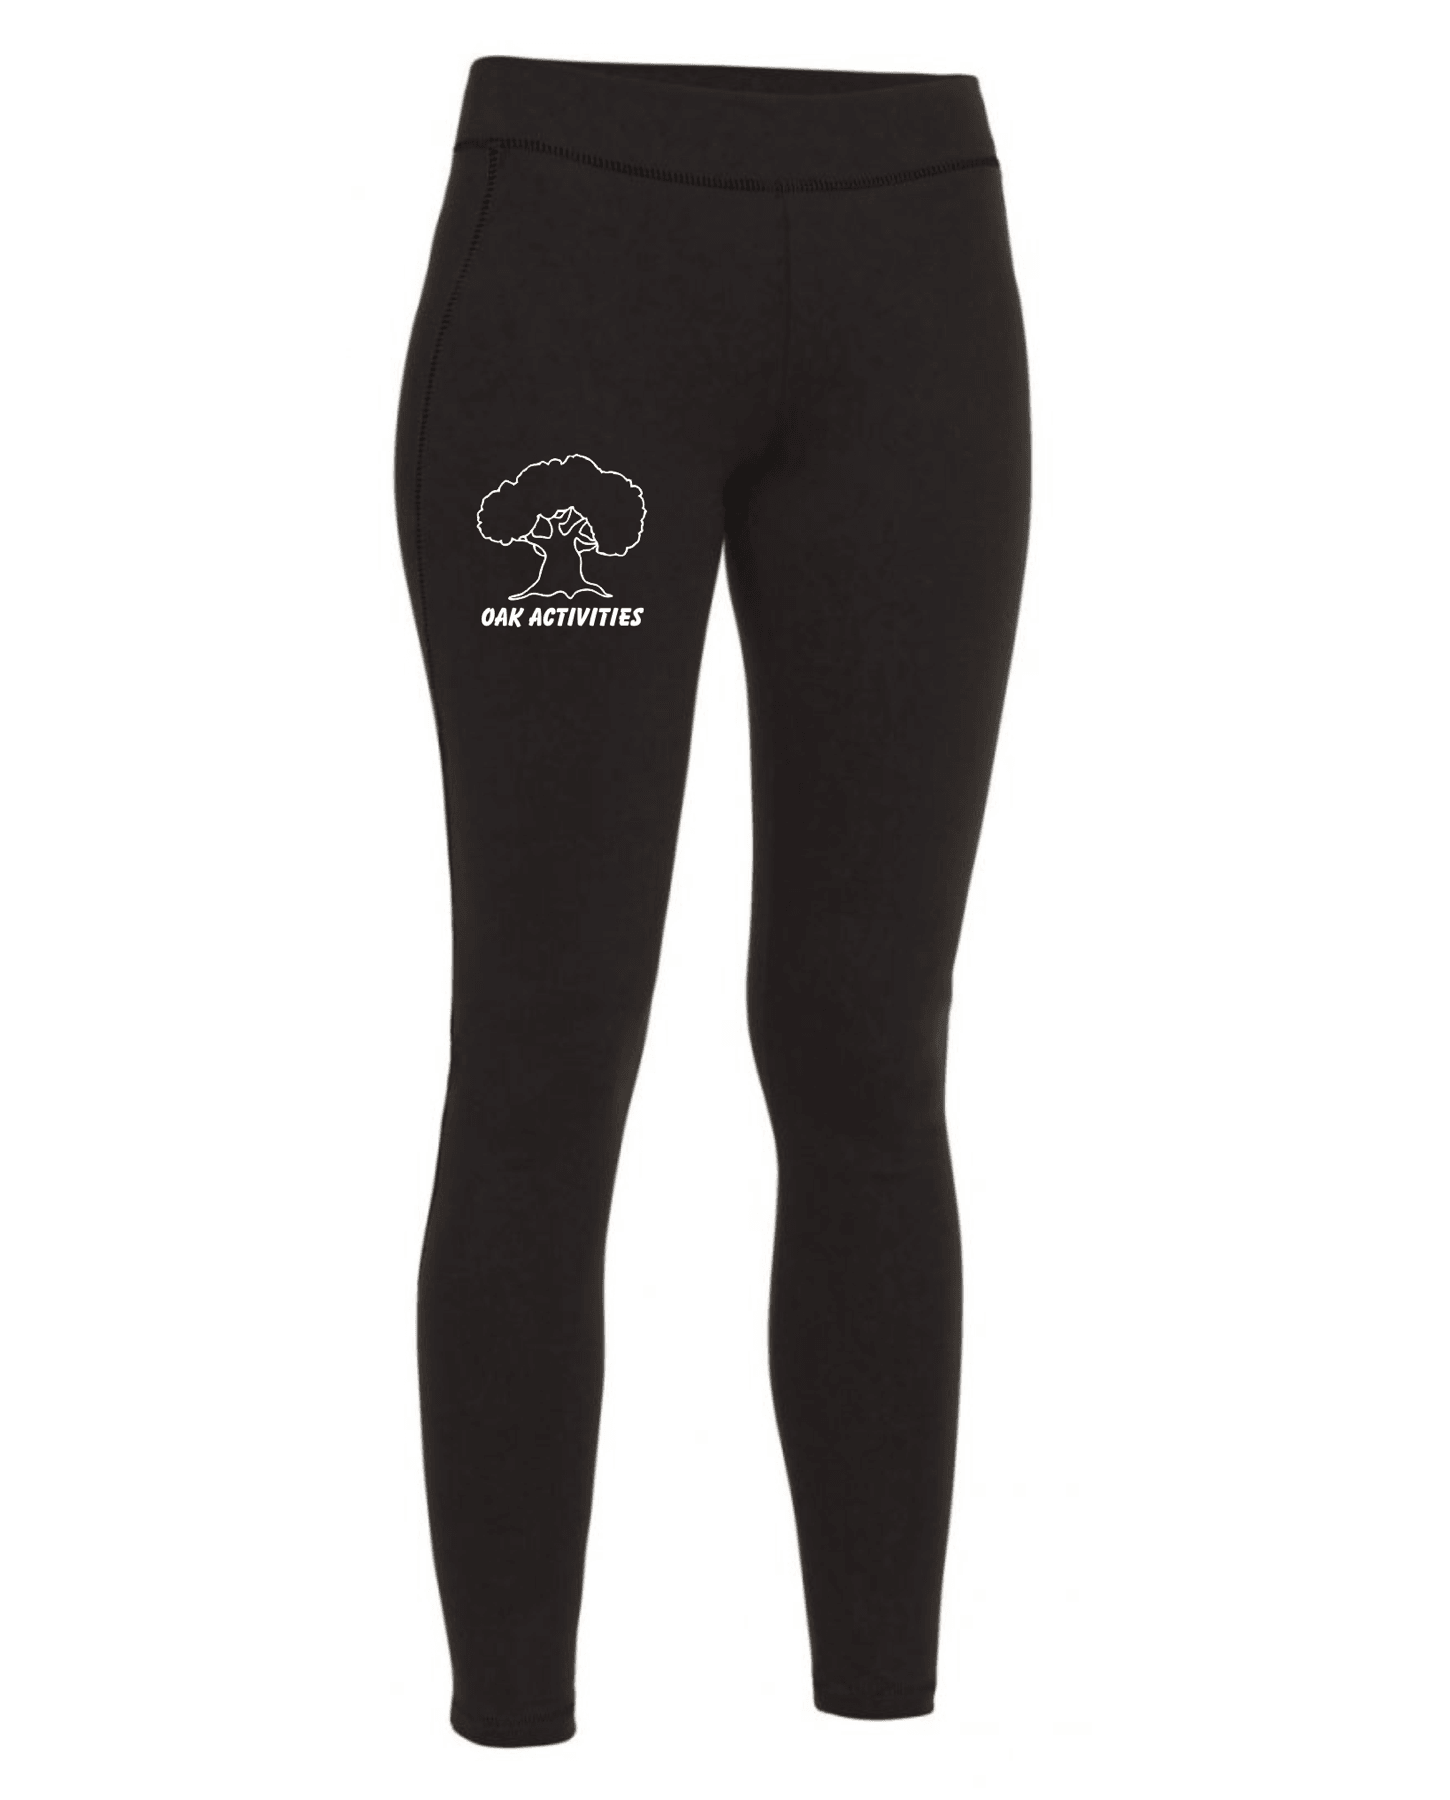 Oak Activities – Kids Stretch Athletic Leggings (Black)